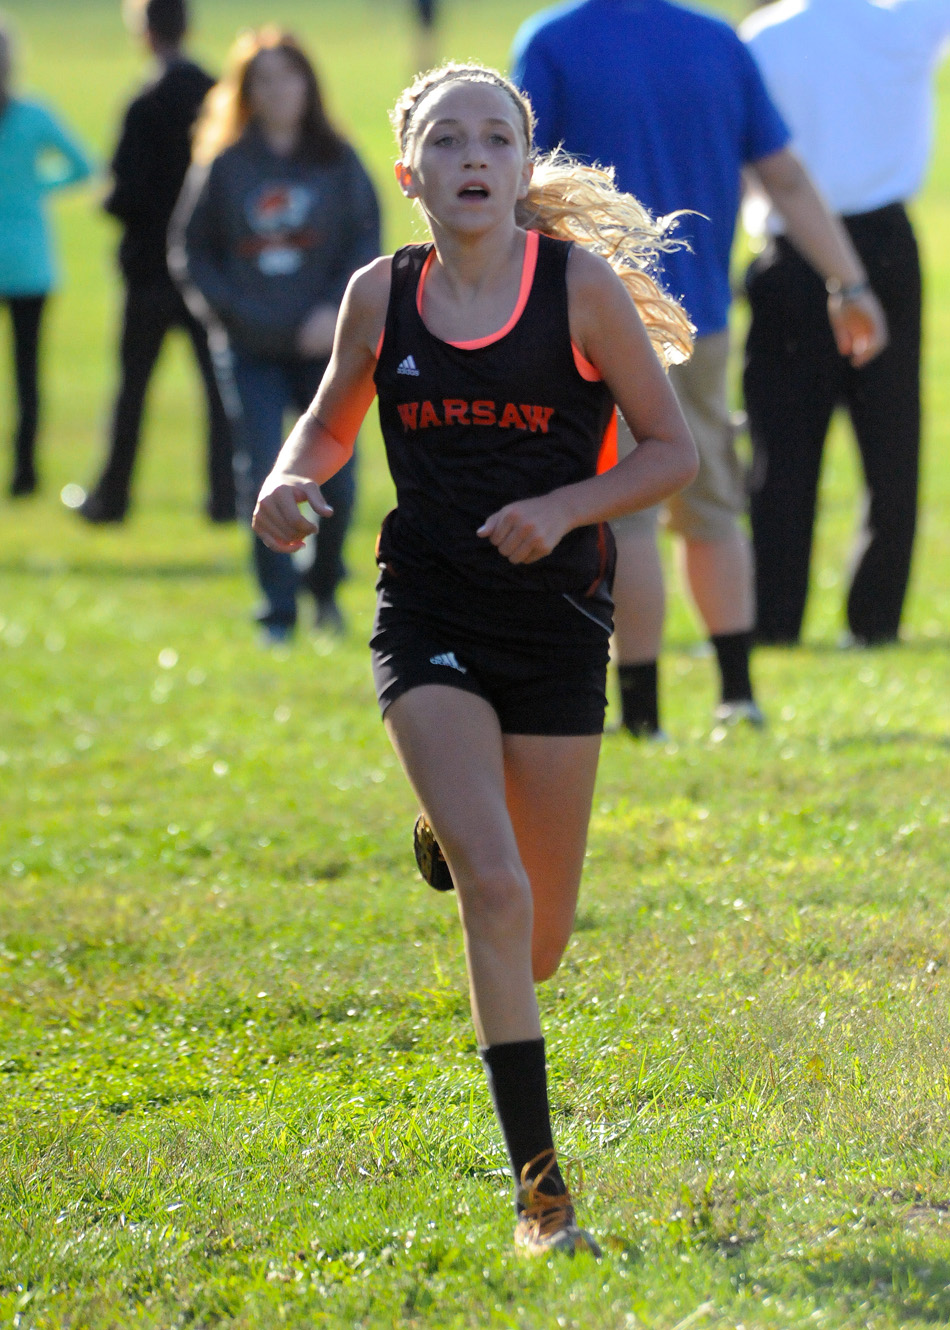 Warsaw's Mia Beckham was the best of the bunch Tuesday in the dual with Wawasee, winning with a time of 20:11. (Photos by Mike Deak)